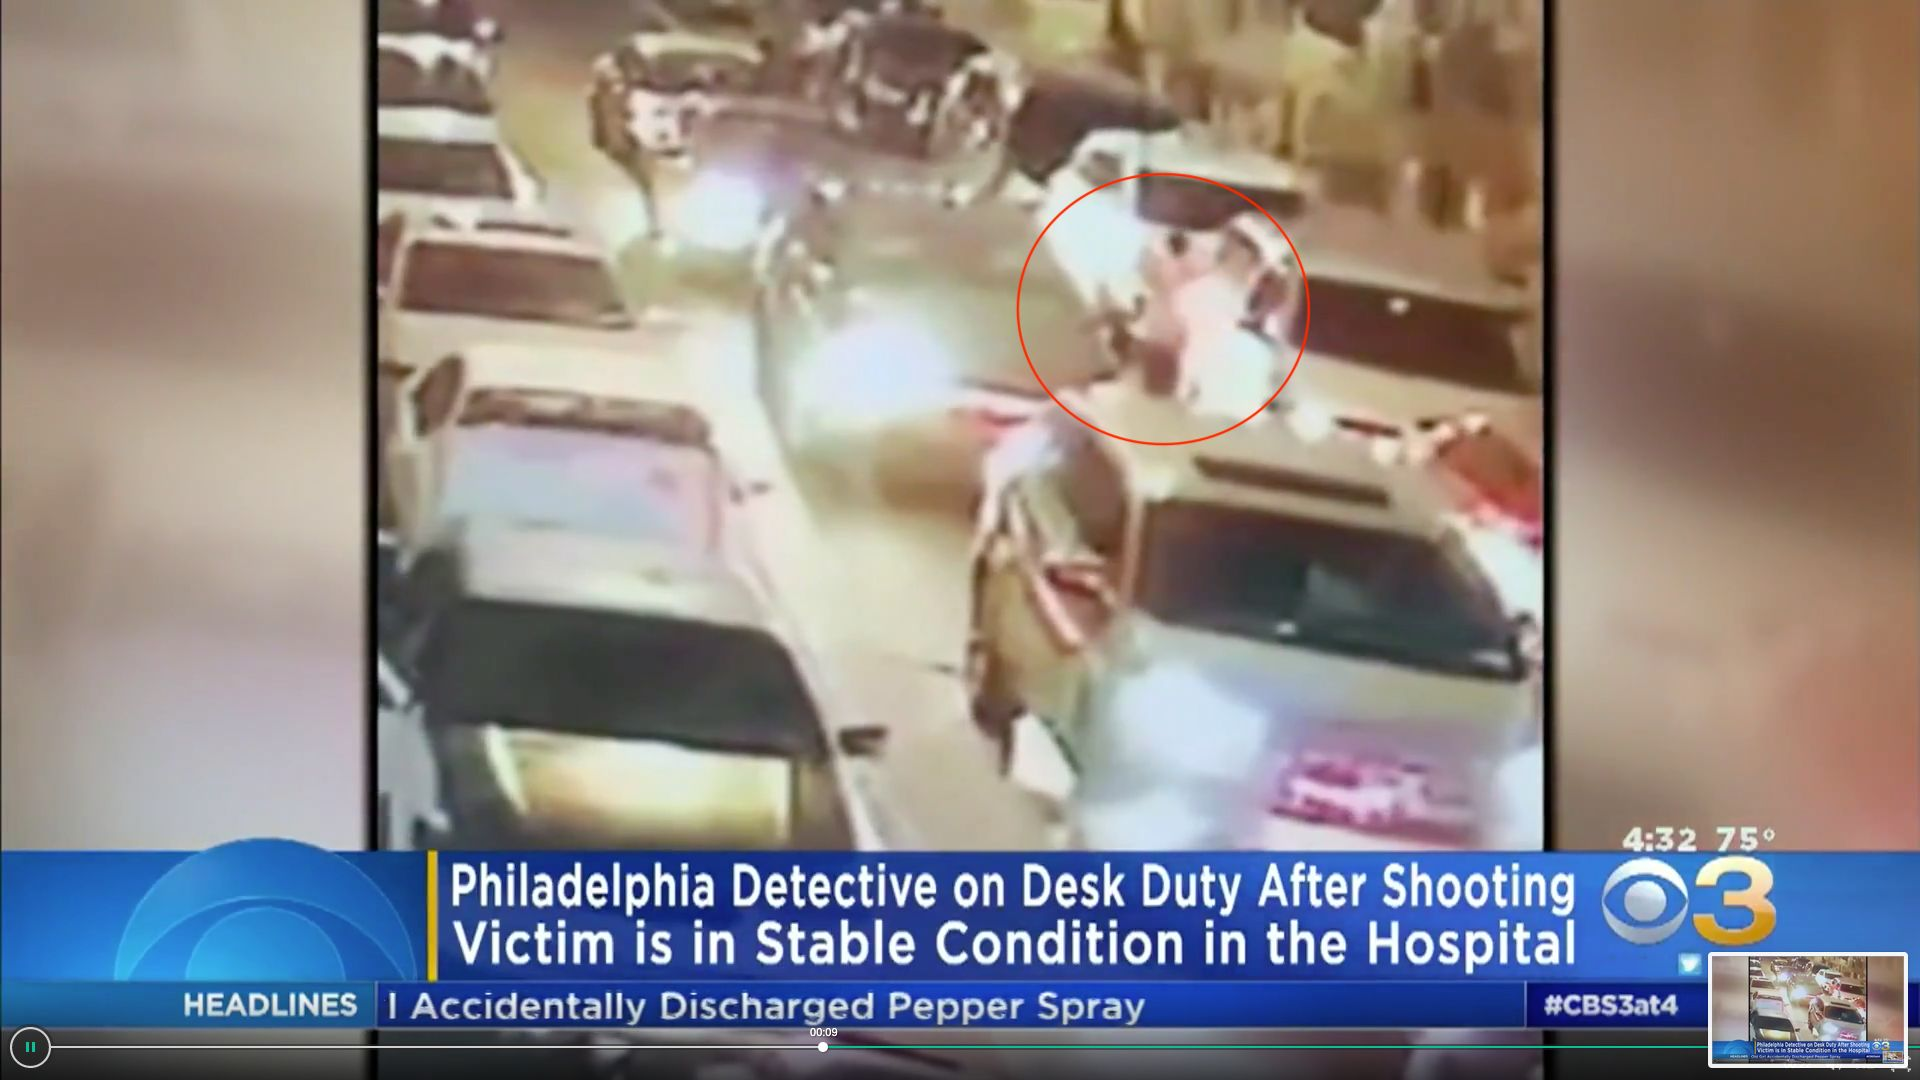 A Philadelphia man is in critical condition after authorities said he was shot through a car window by a plainclothes police detective who mistook him for an armed carjacker.